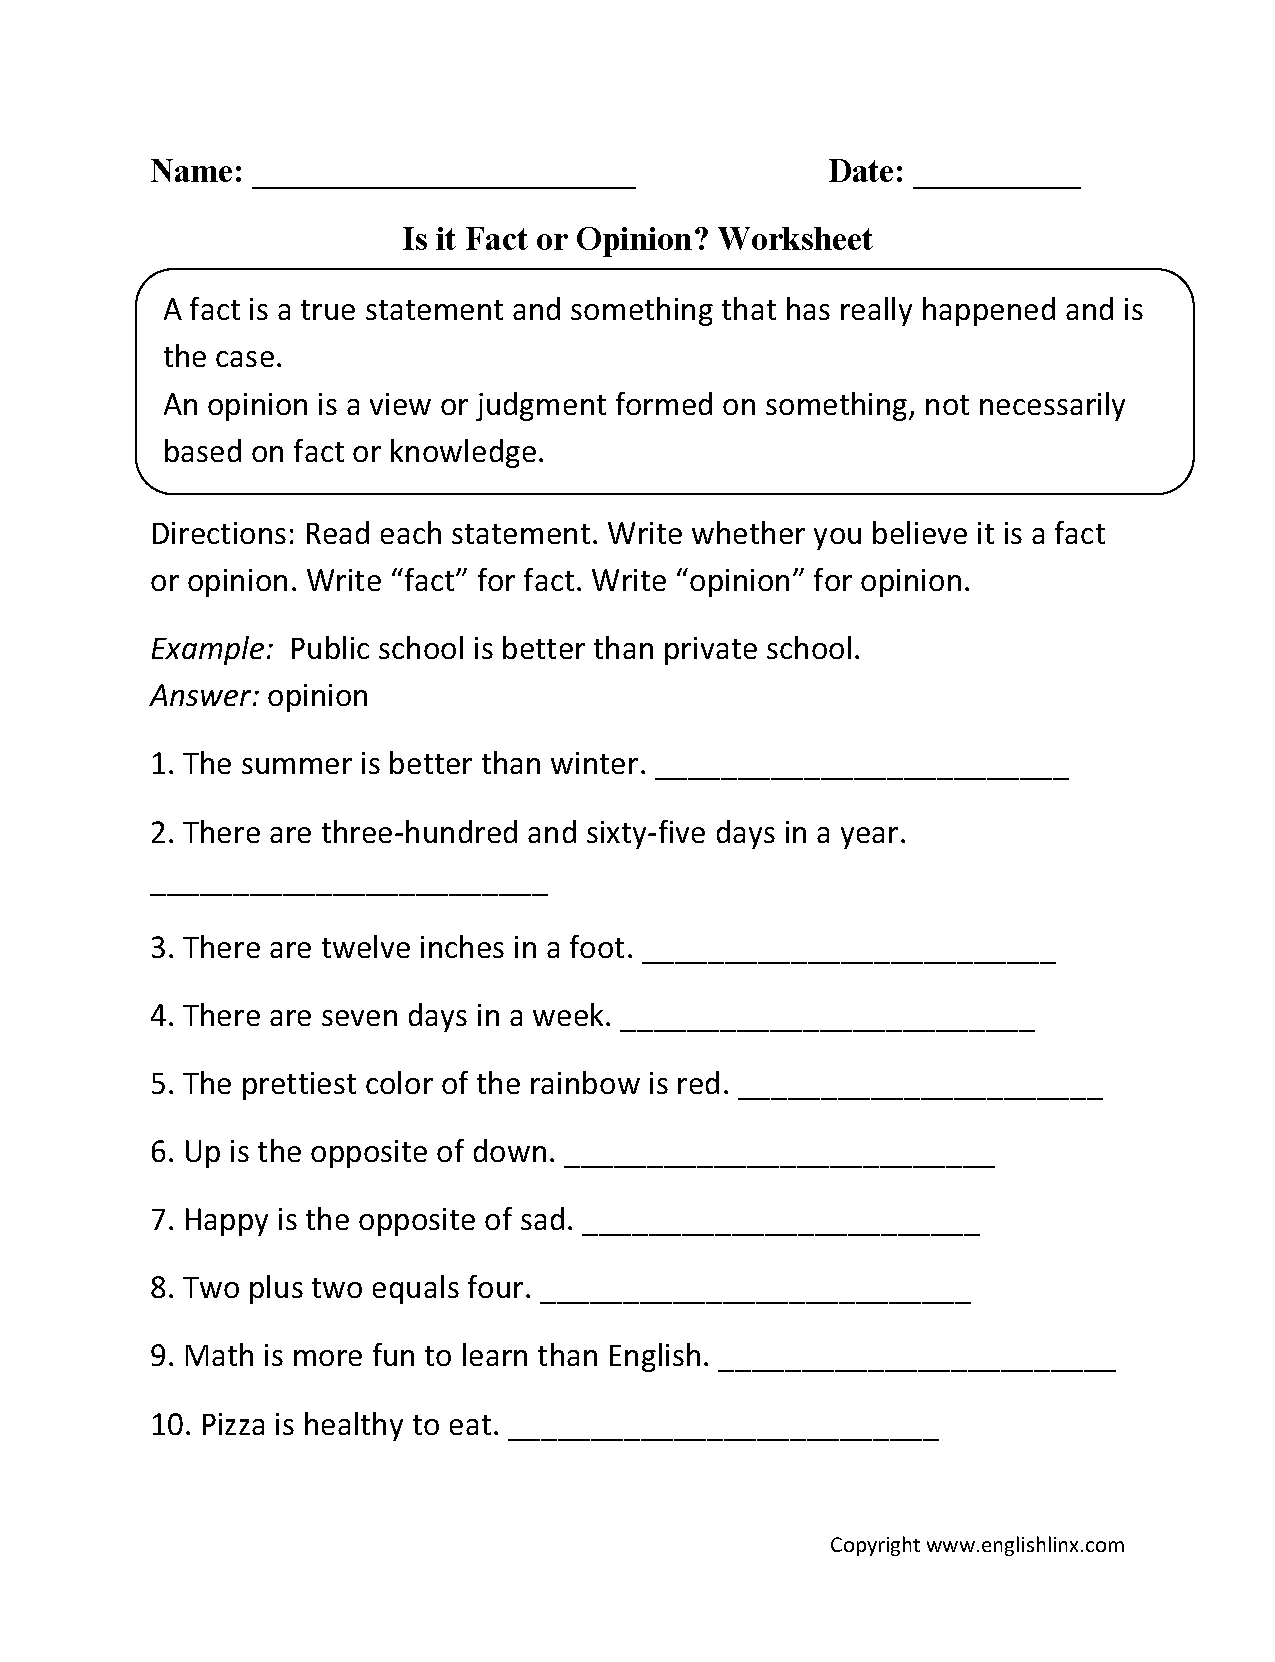 Worksheet Fact And Opinion Worksheets reading worksheets fact and opinion is it or worksheet